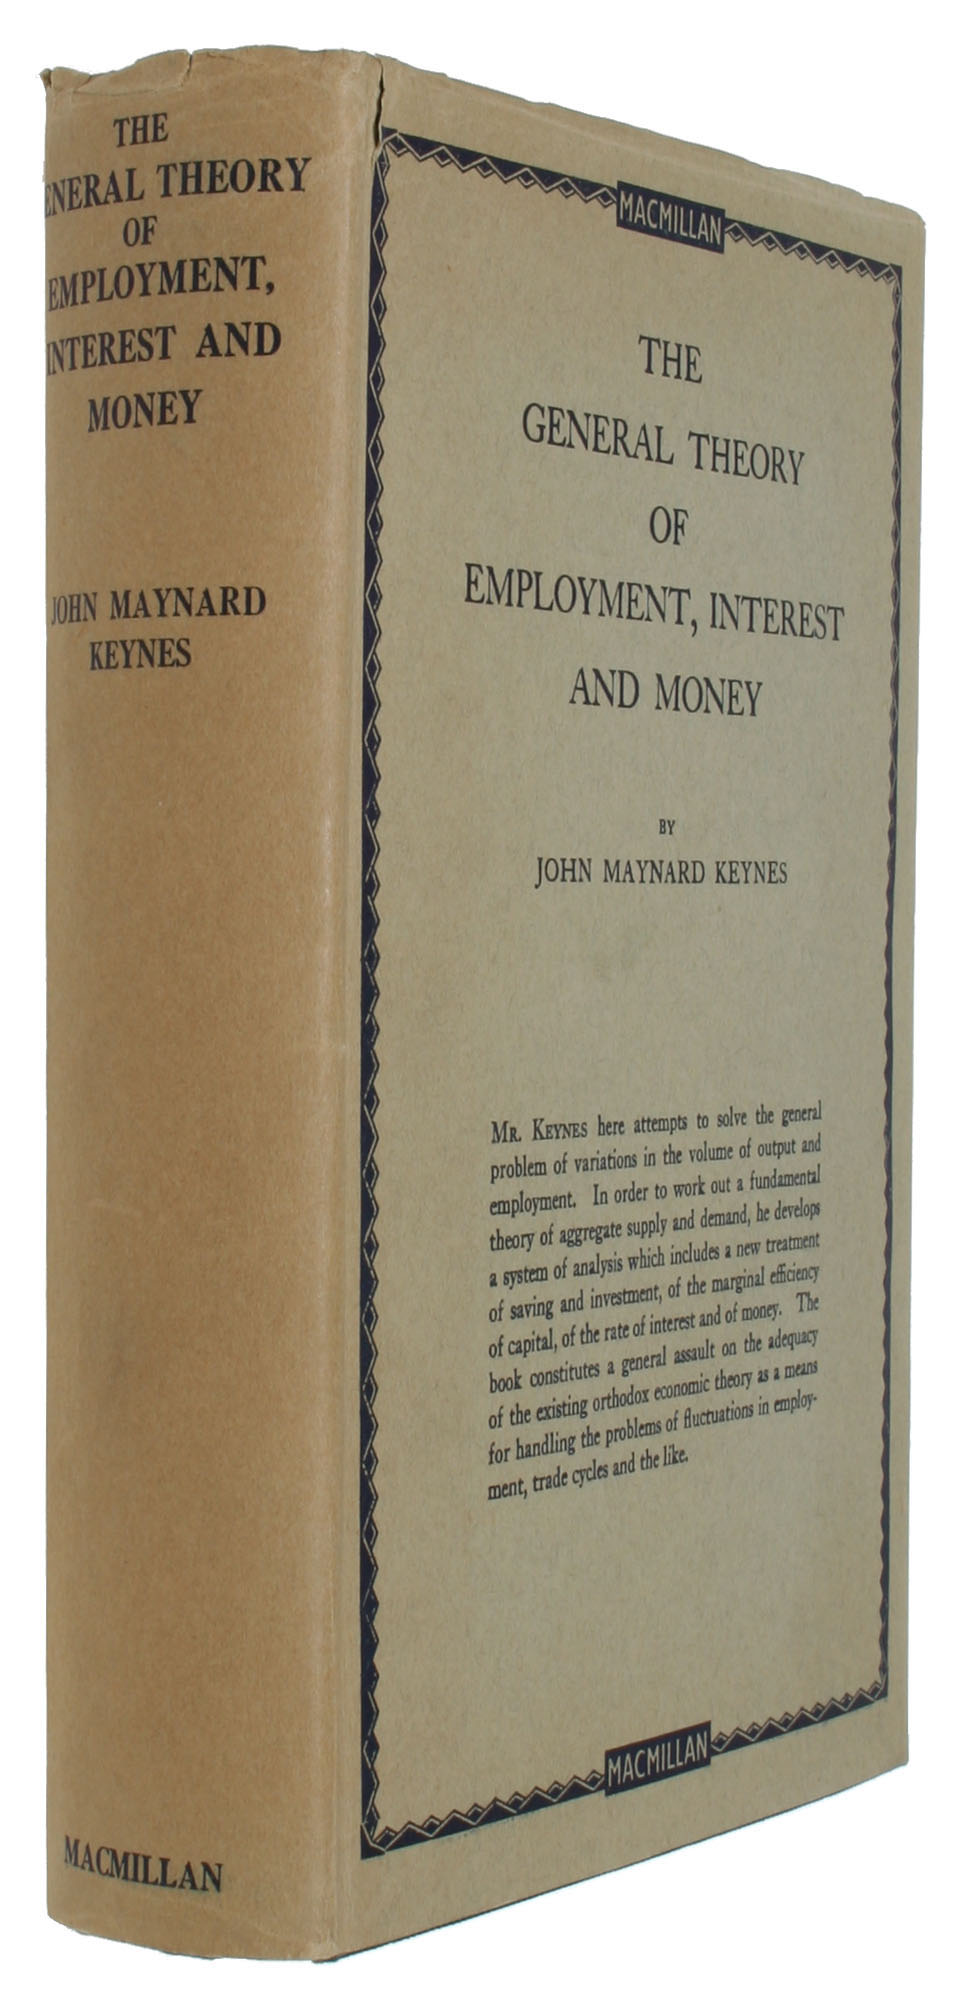 review of john hicks article a suggested interpretation of keynes essay It was with john hicks that keynesian economics produced a clear model which policy-makers could use to attempt to understand and control economic activity this model, the is-lm model is nearly as influential as keynes' original analysis in determining actual policy and economics education.